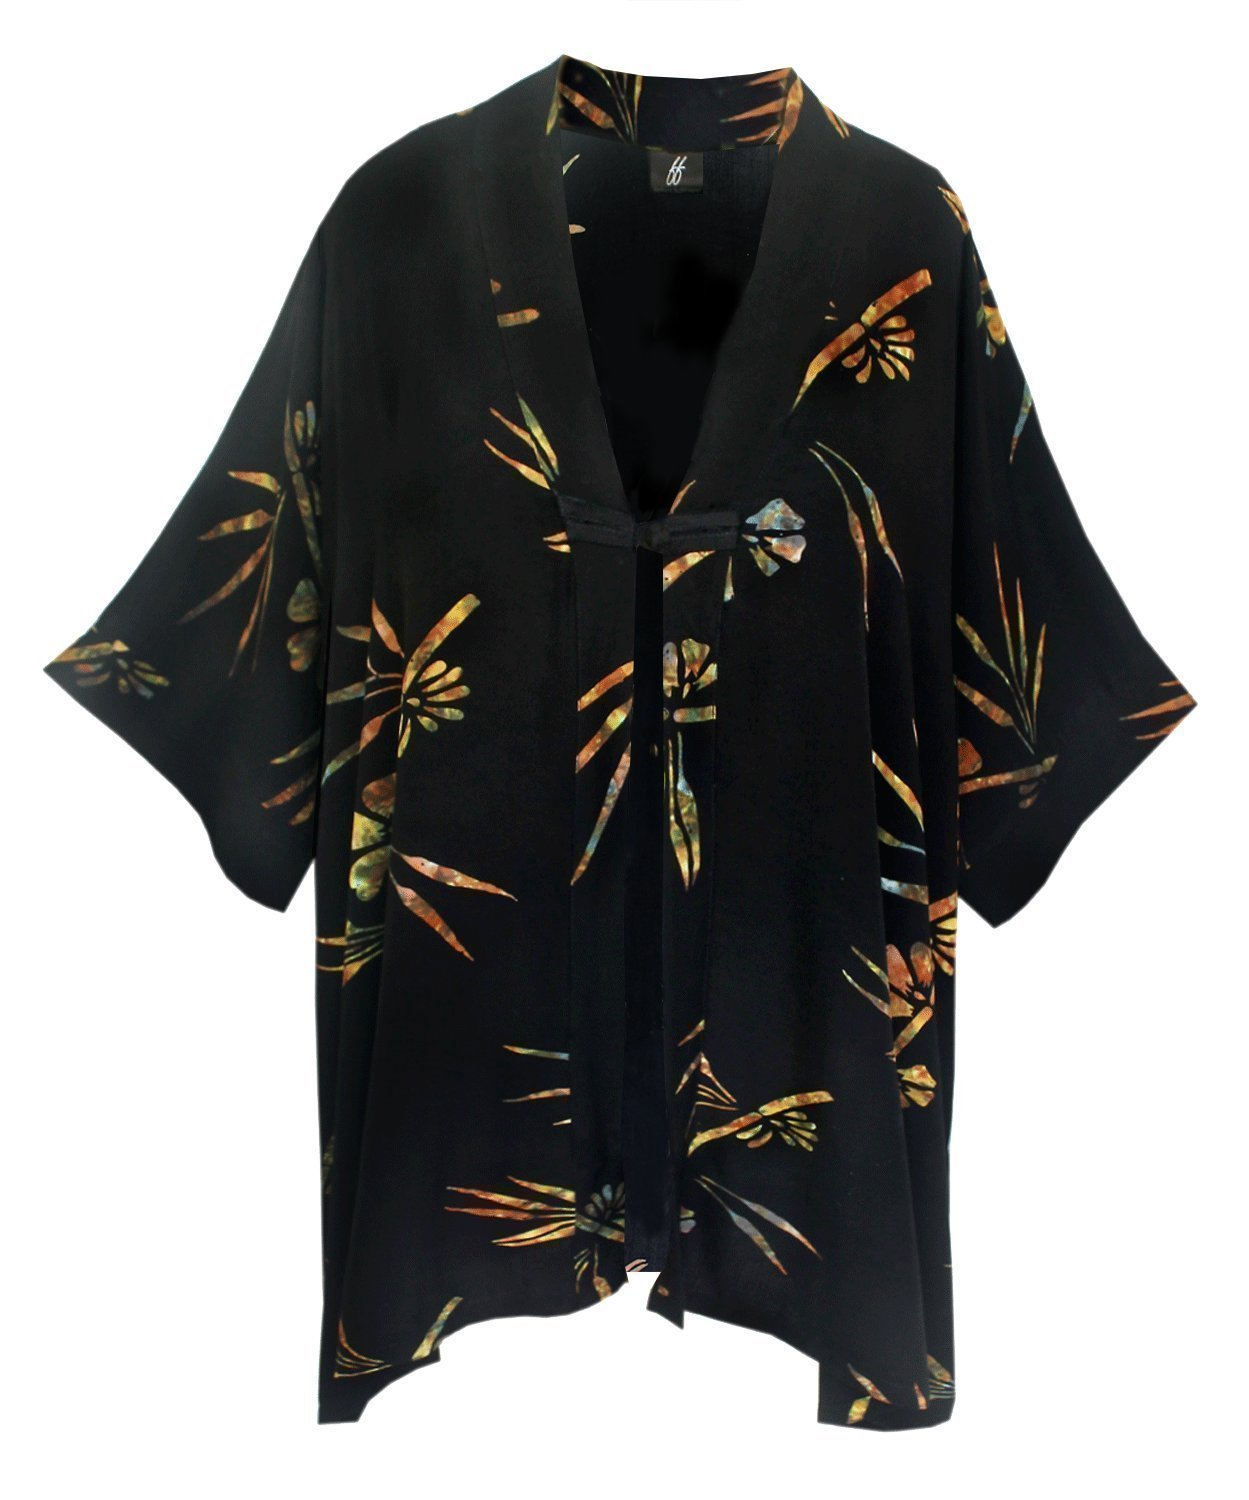 Kimono PLUS SIZE Caftan Cardigan, Plus Sizes XL-2X and 2X-4X, Oriental Inspired Jacket with Chinese Button Knot, Hand Batik Fabric, Art Wear PLUS SIZE Clothing for Full Figures, CUSTOM ORDER